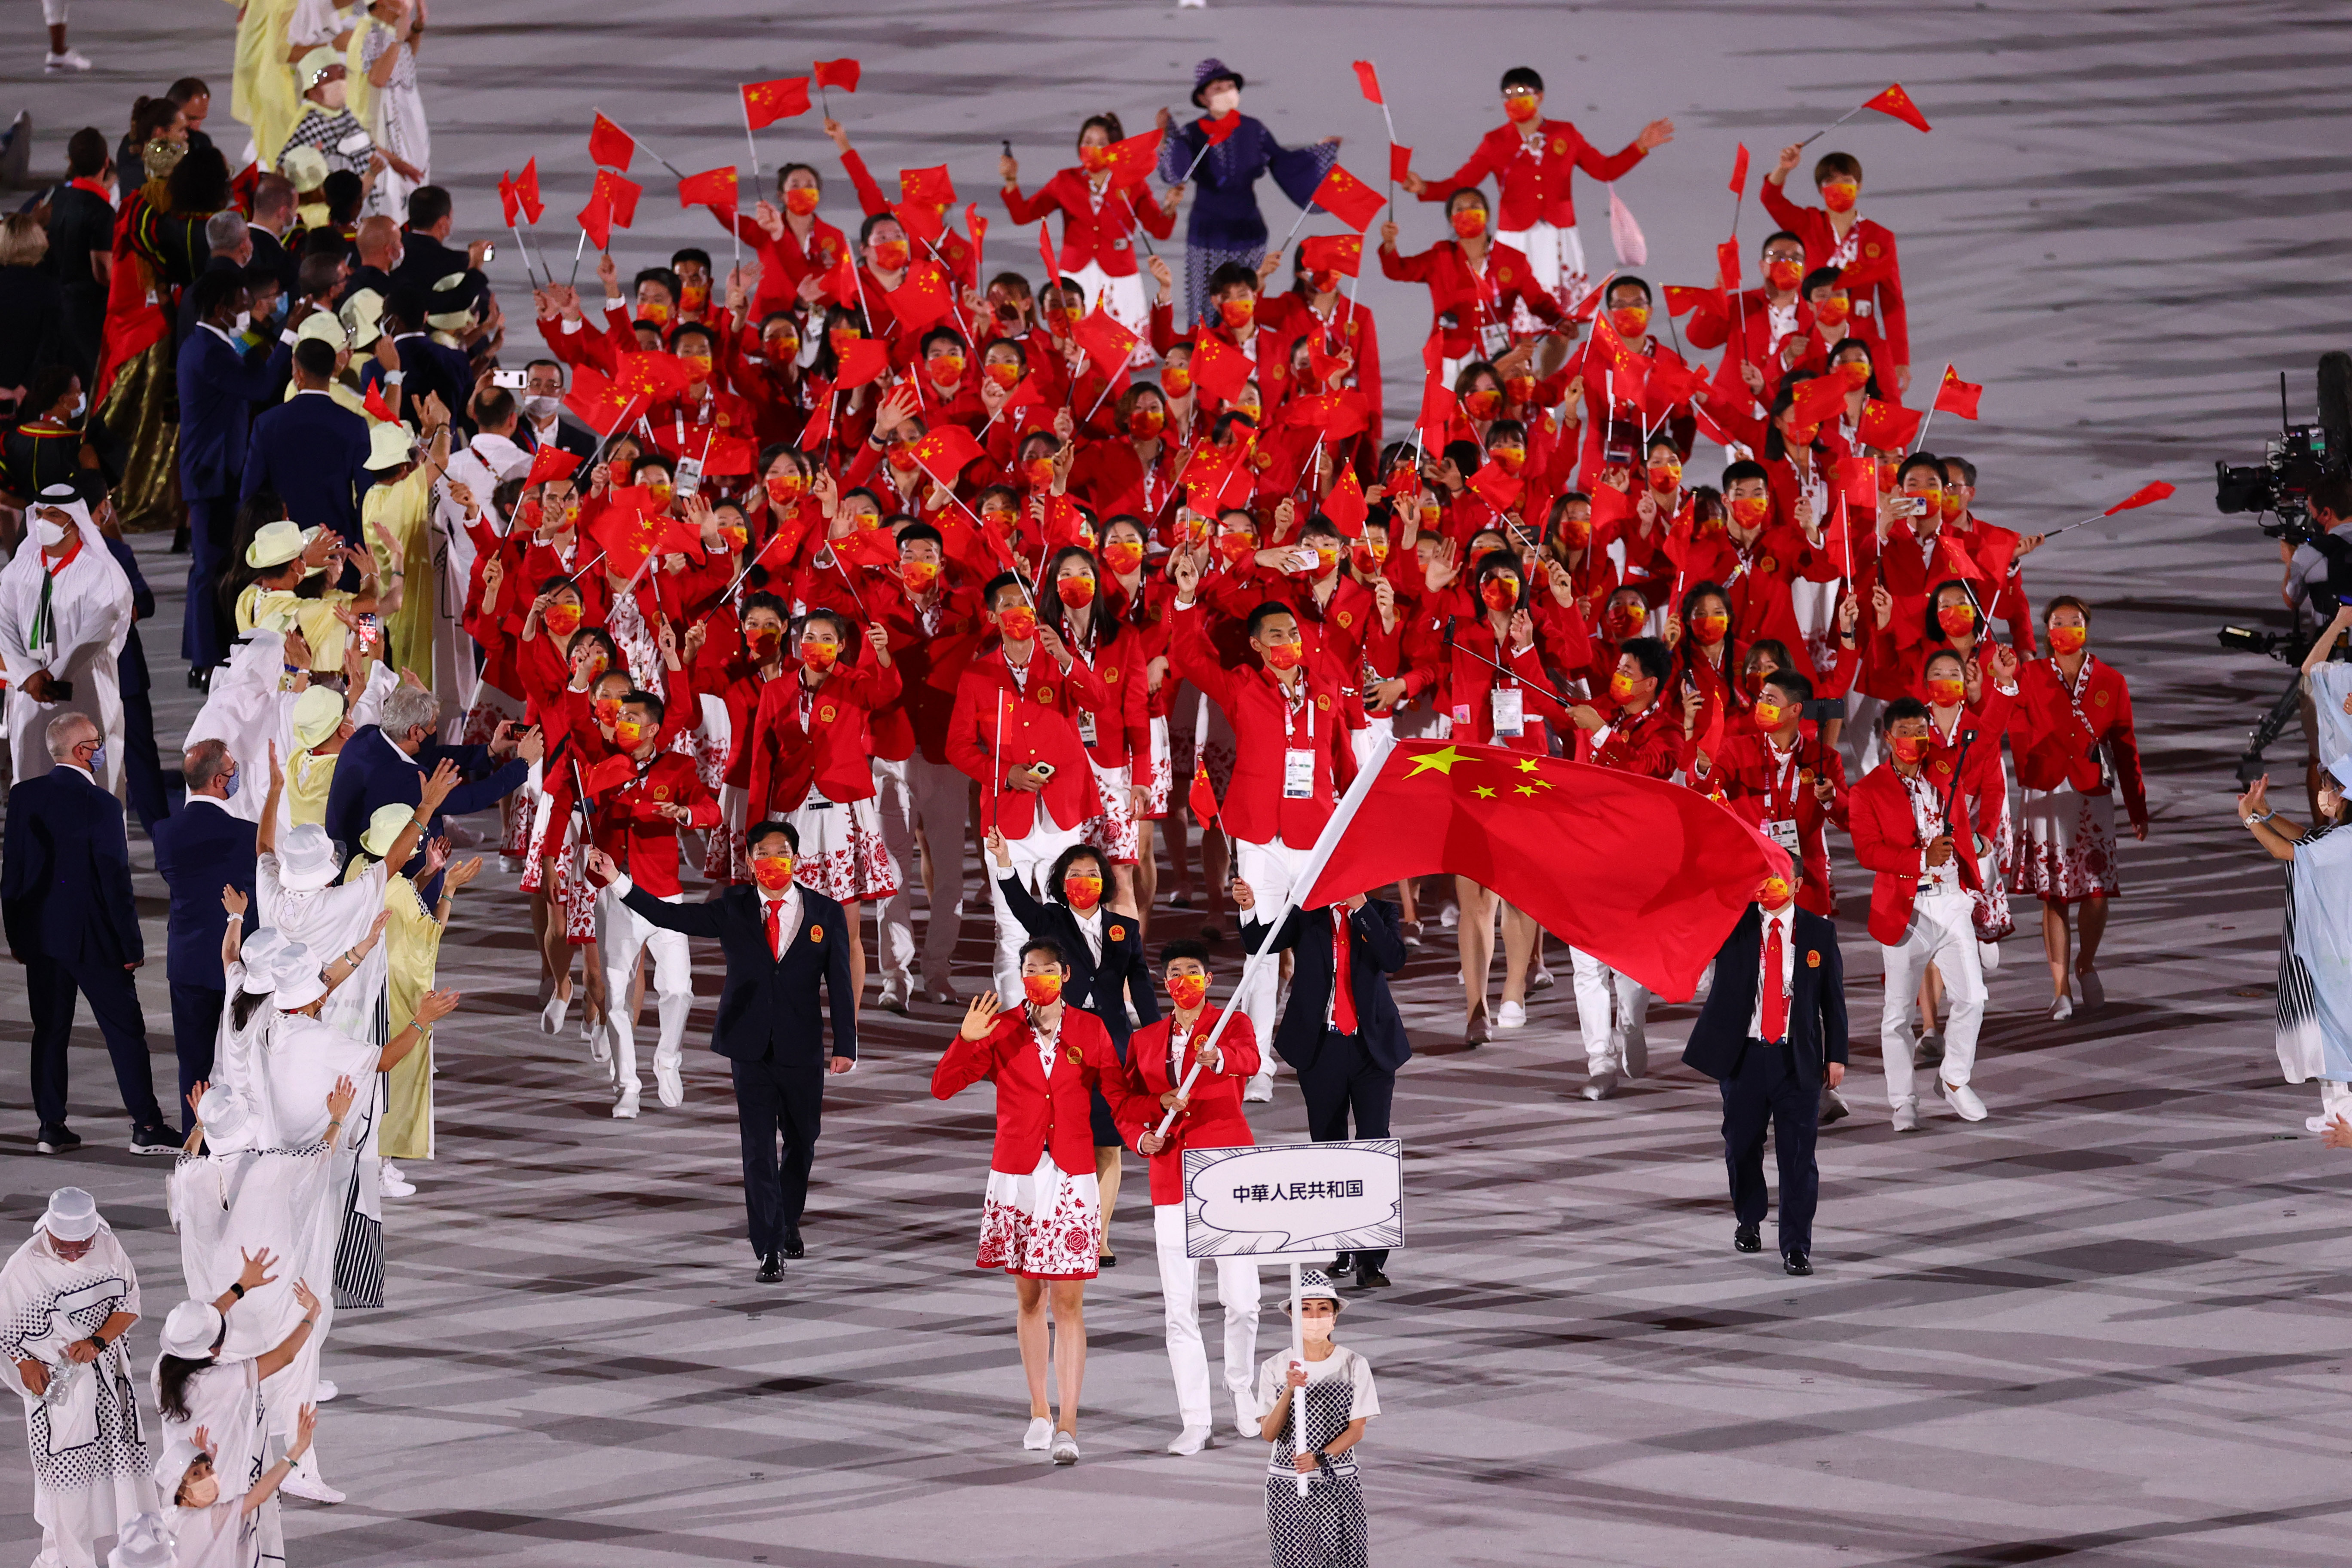 Tokyo 2020 Olympics - The Tokyo 2020 Olympics Opening Ceremony - Olympic Stadium, Tokyo, Japan - July 23, 2021. Flag bearers Zhao Shuai of China and Ting Zhu of China lead their contingent during the athletes parade at the opening ceremony REUTERS/Mike Blake